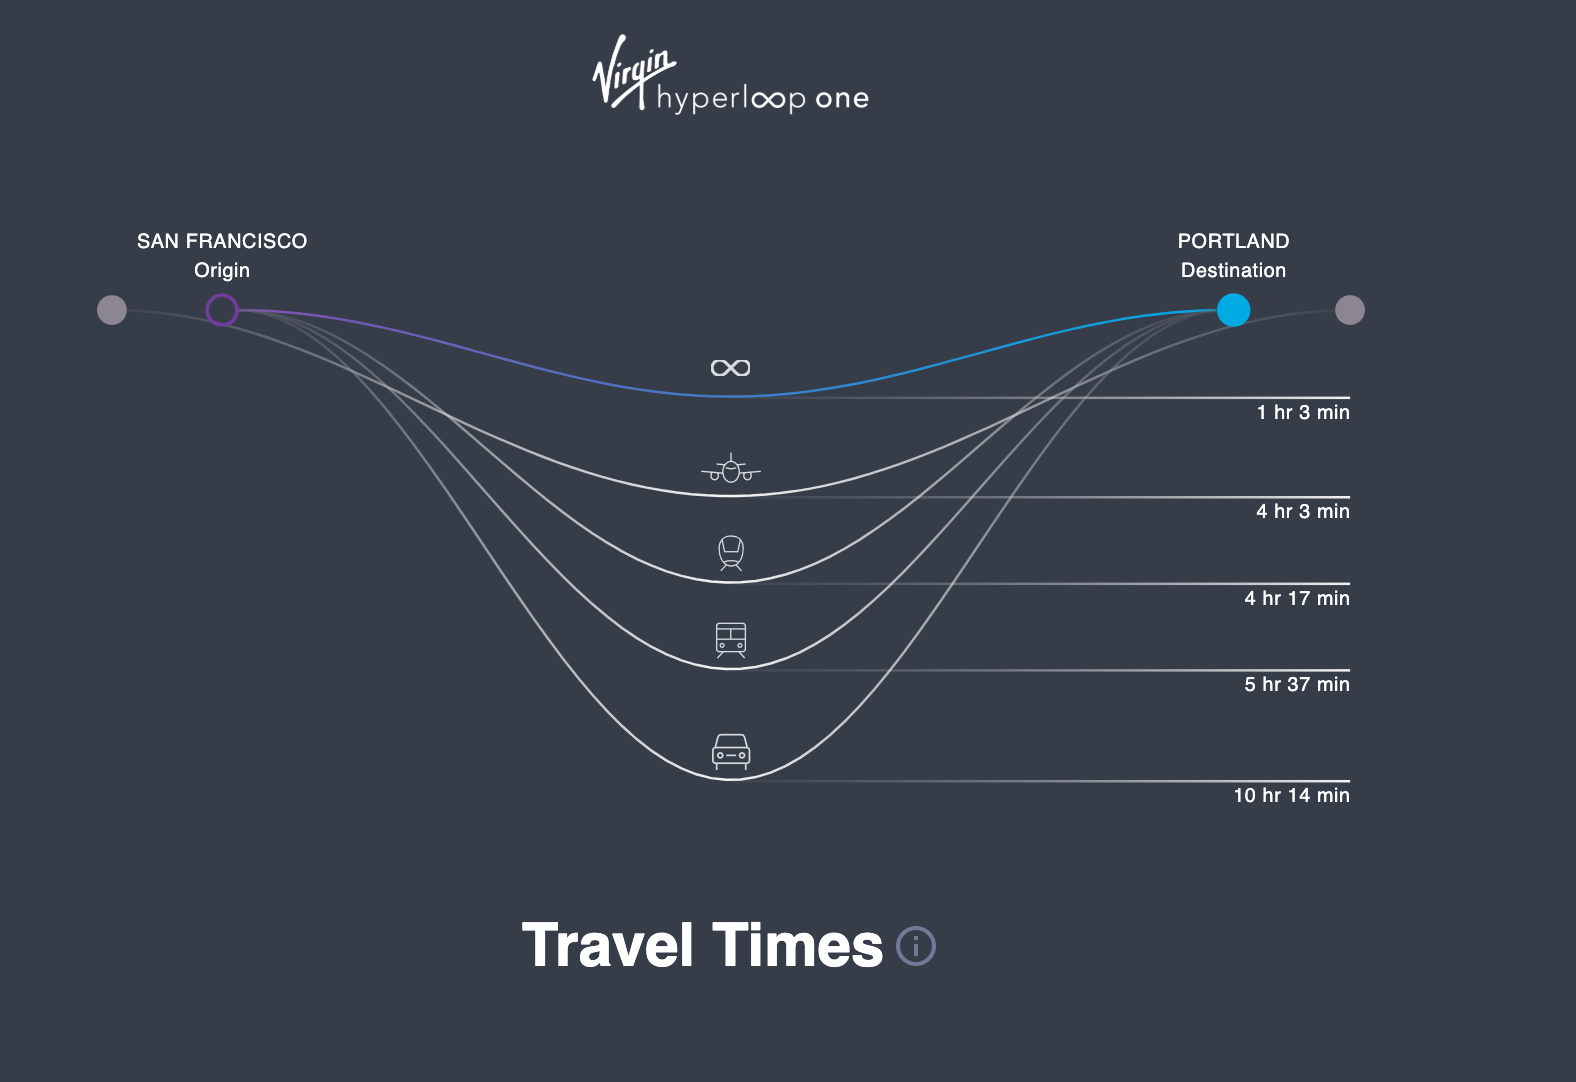 A comparison of VHO travel time between VHO trains and alternative transport methods for a trip from San Francisco to Portland, Oregon. With VHO, a ten hour car ride is sliced down to only an hour trip.